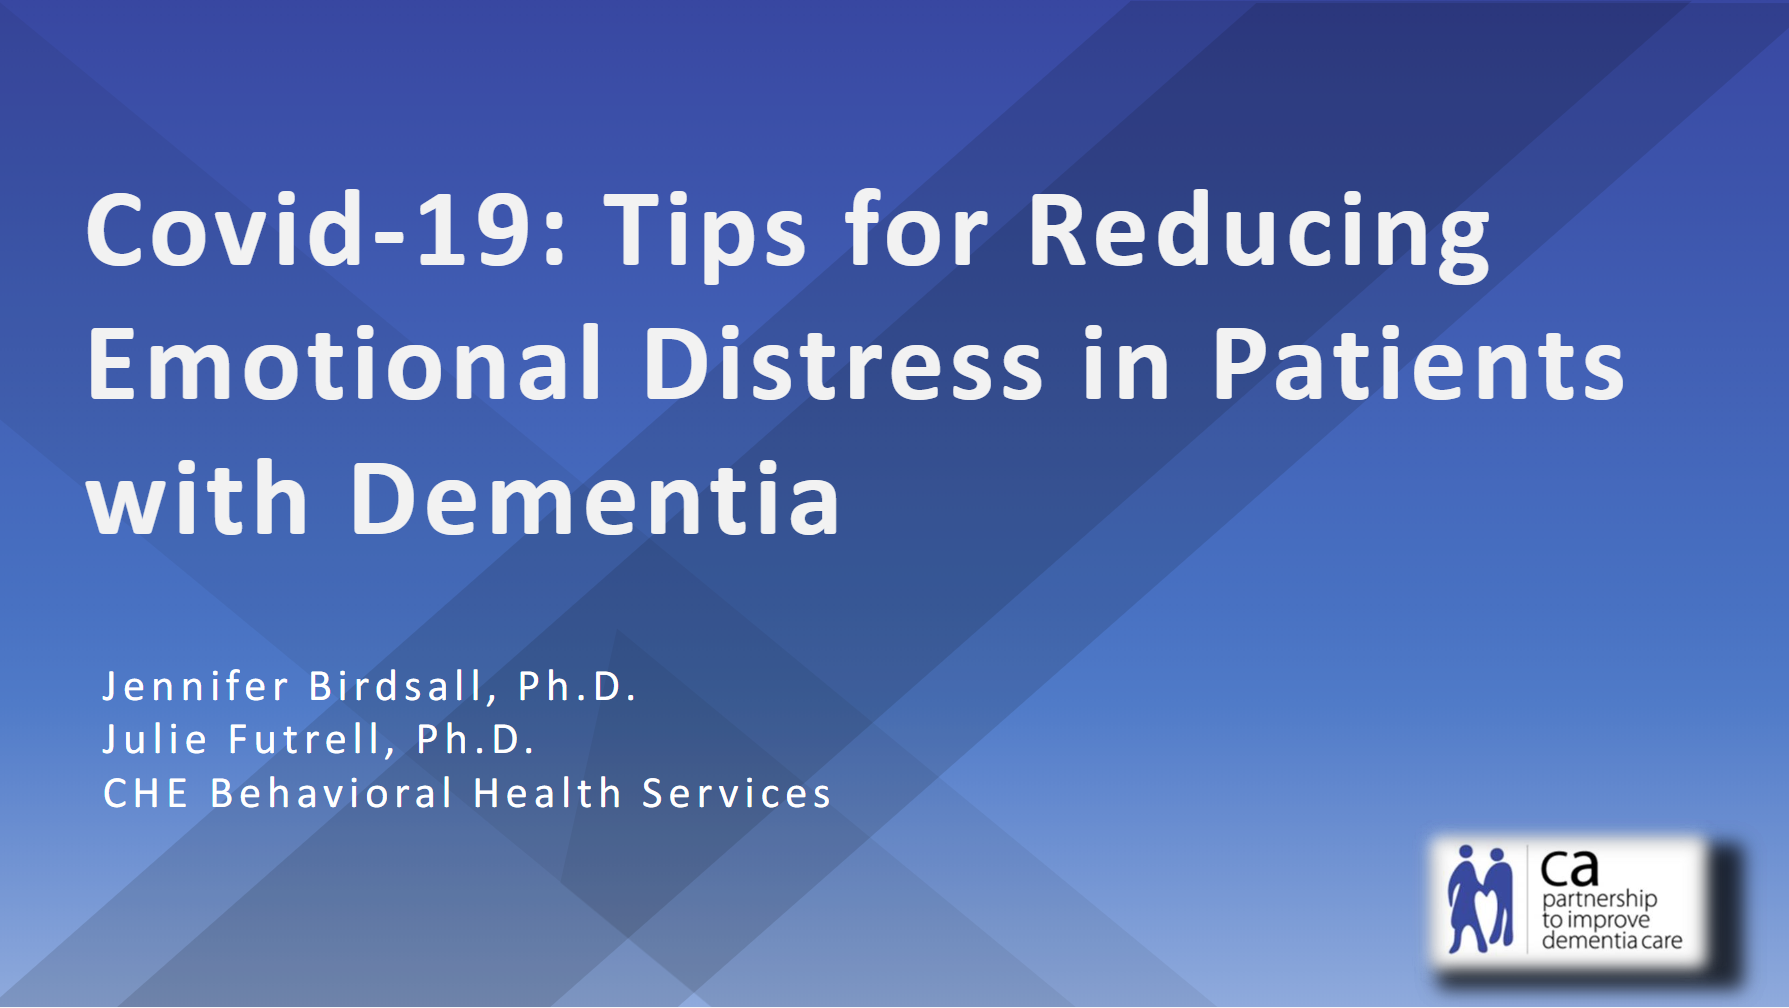 Tips for Reducing Emotional Distress in Patients with Dementia